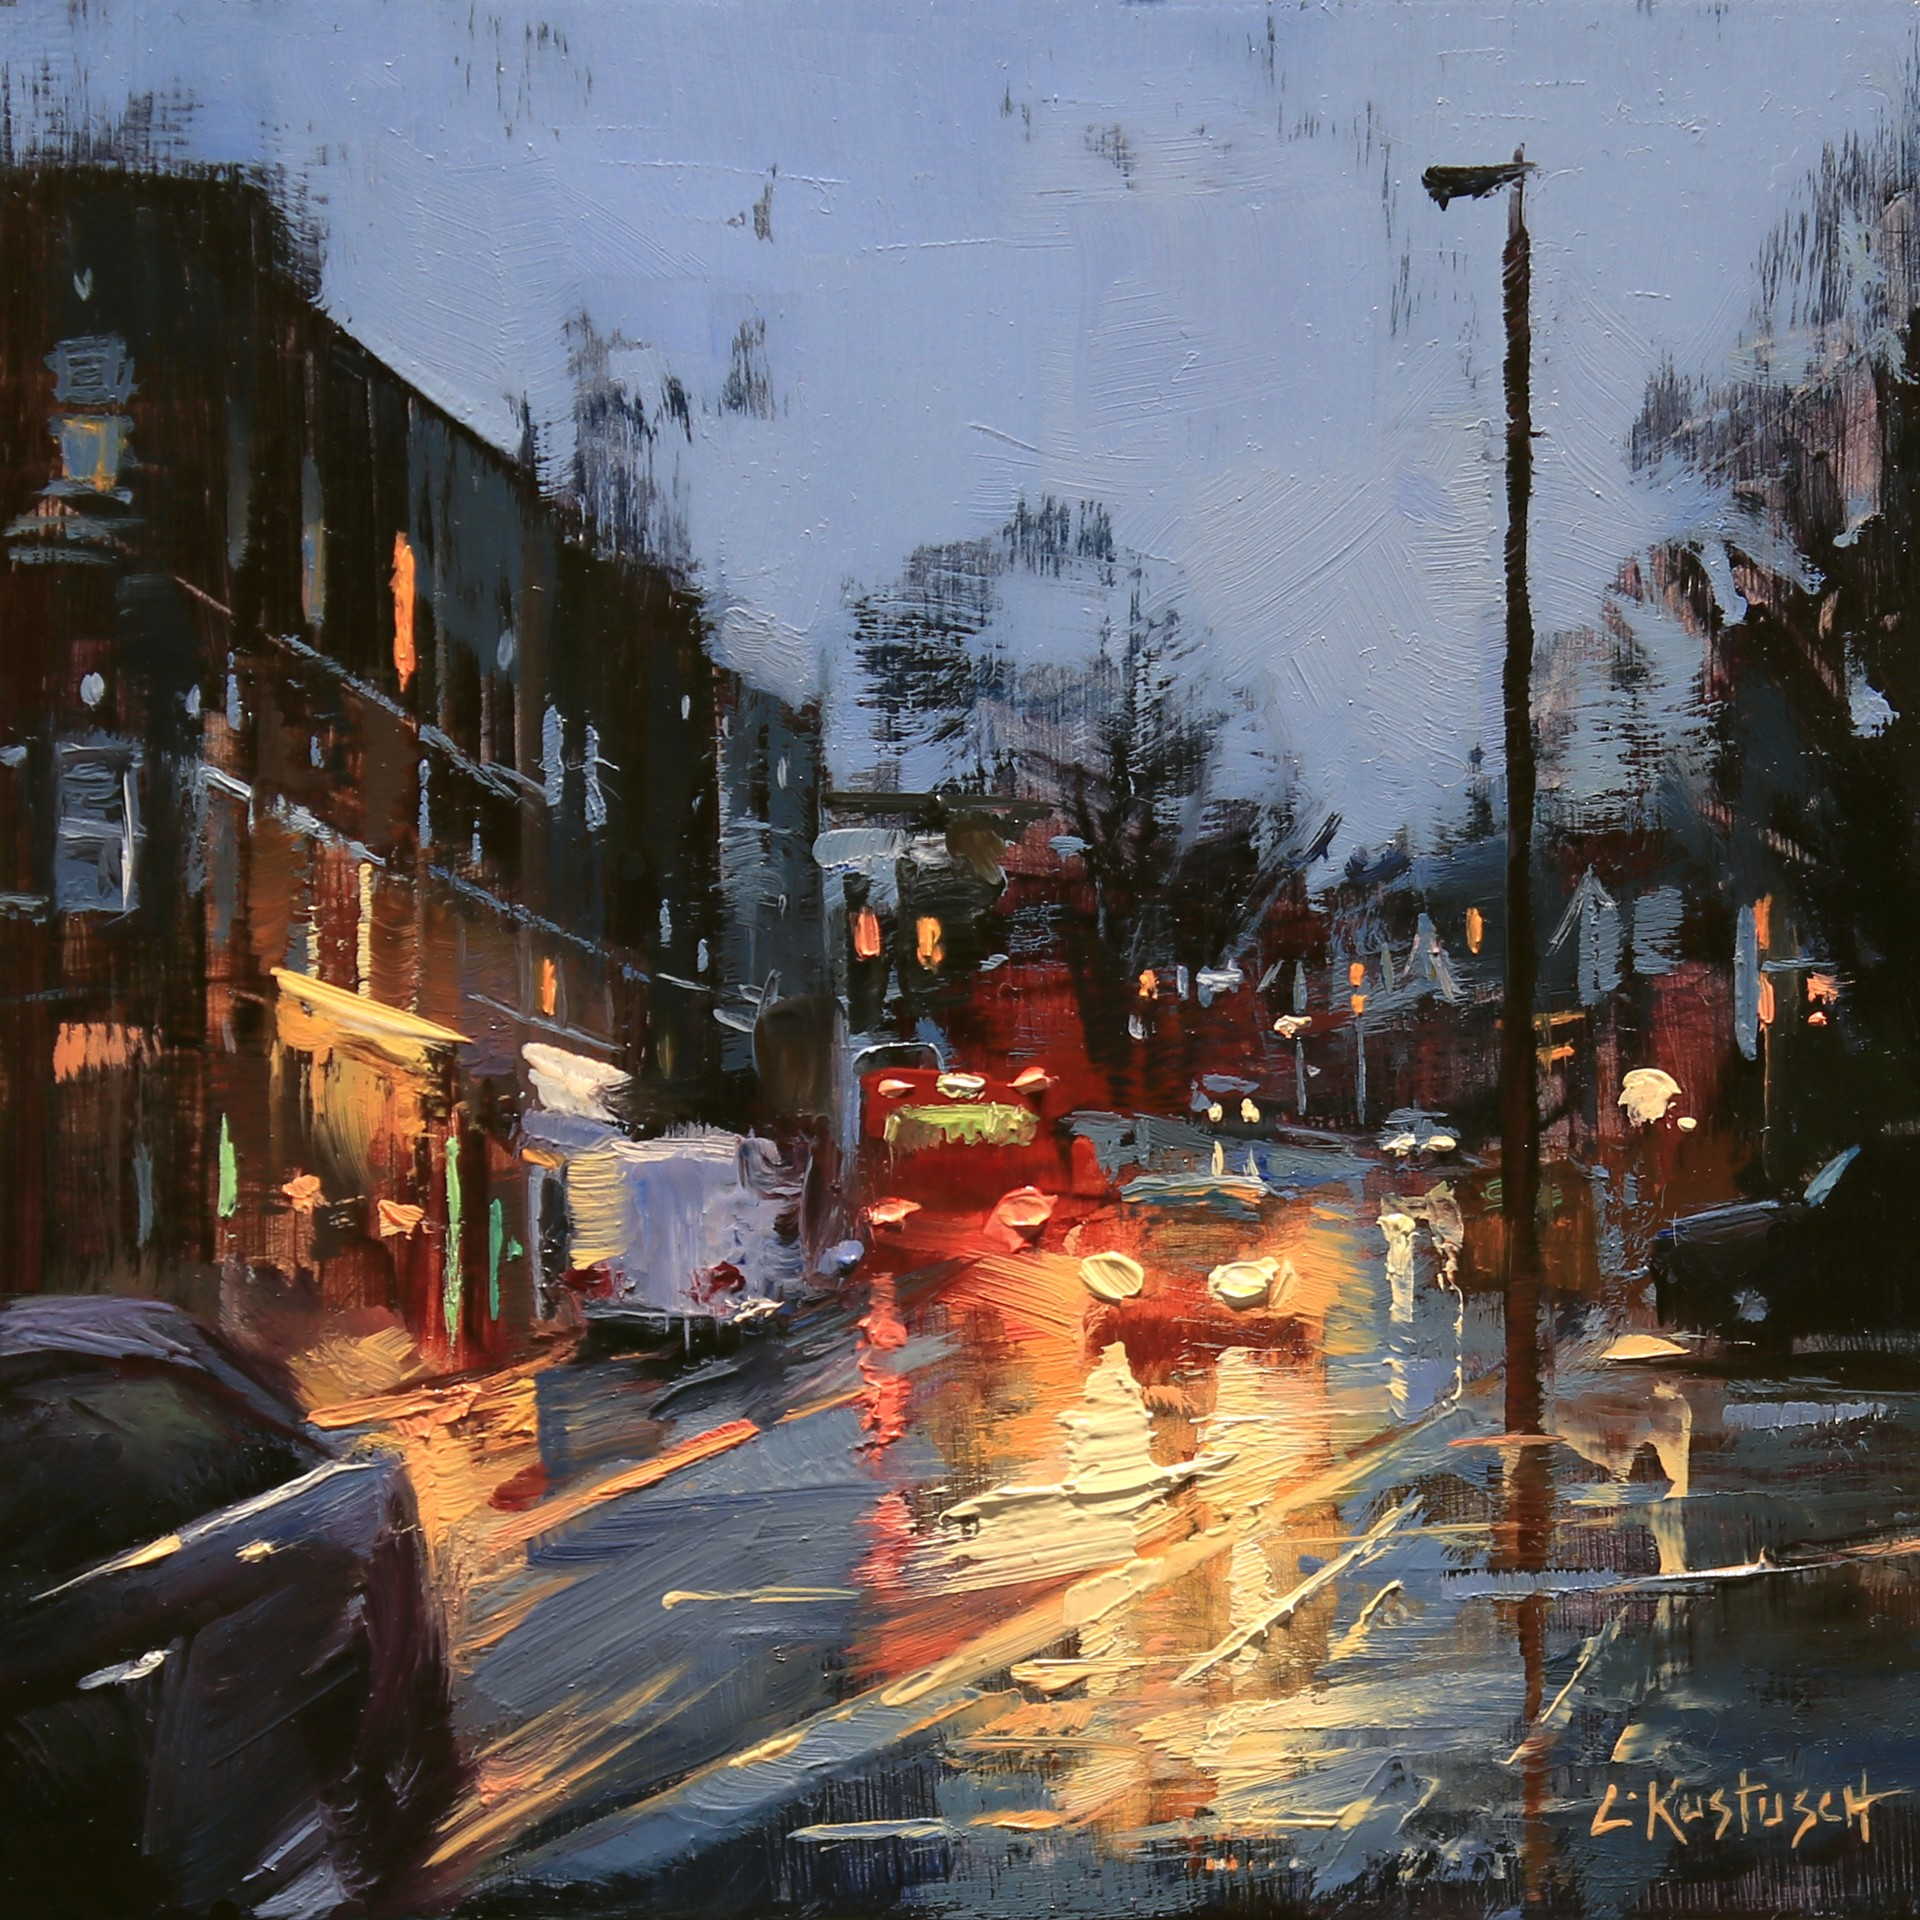 December Rain in London by Lindsey Kustusch